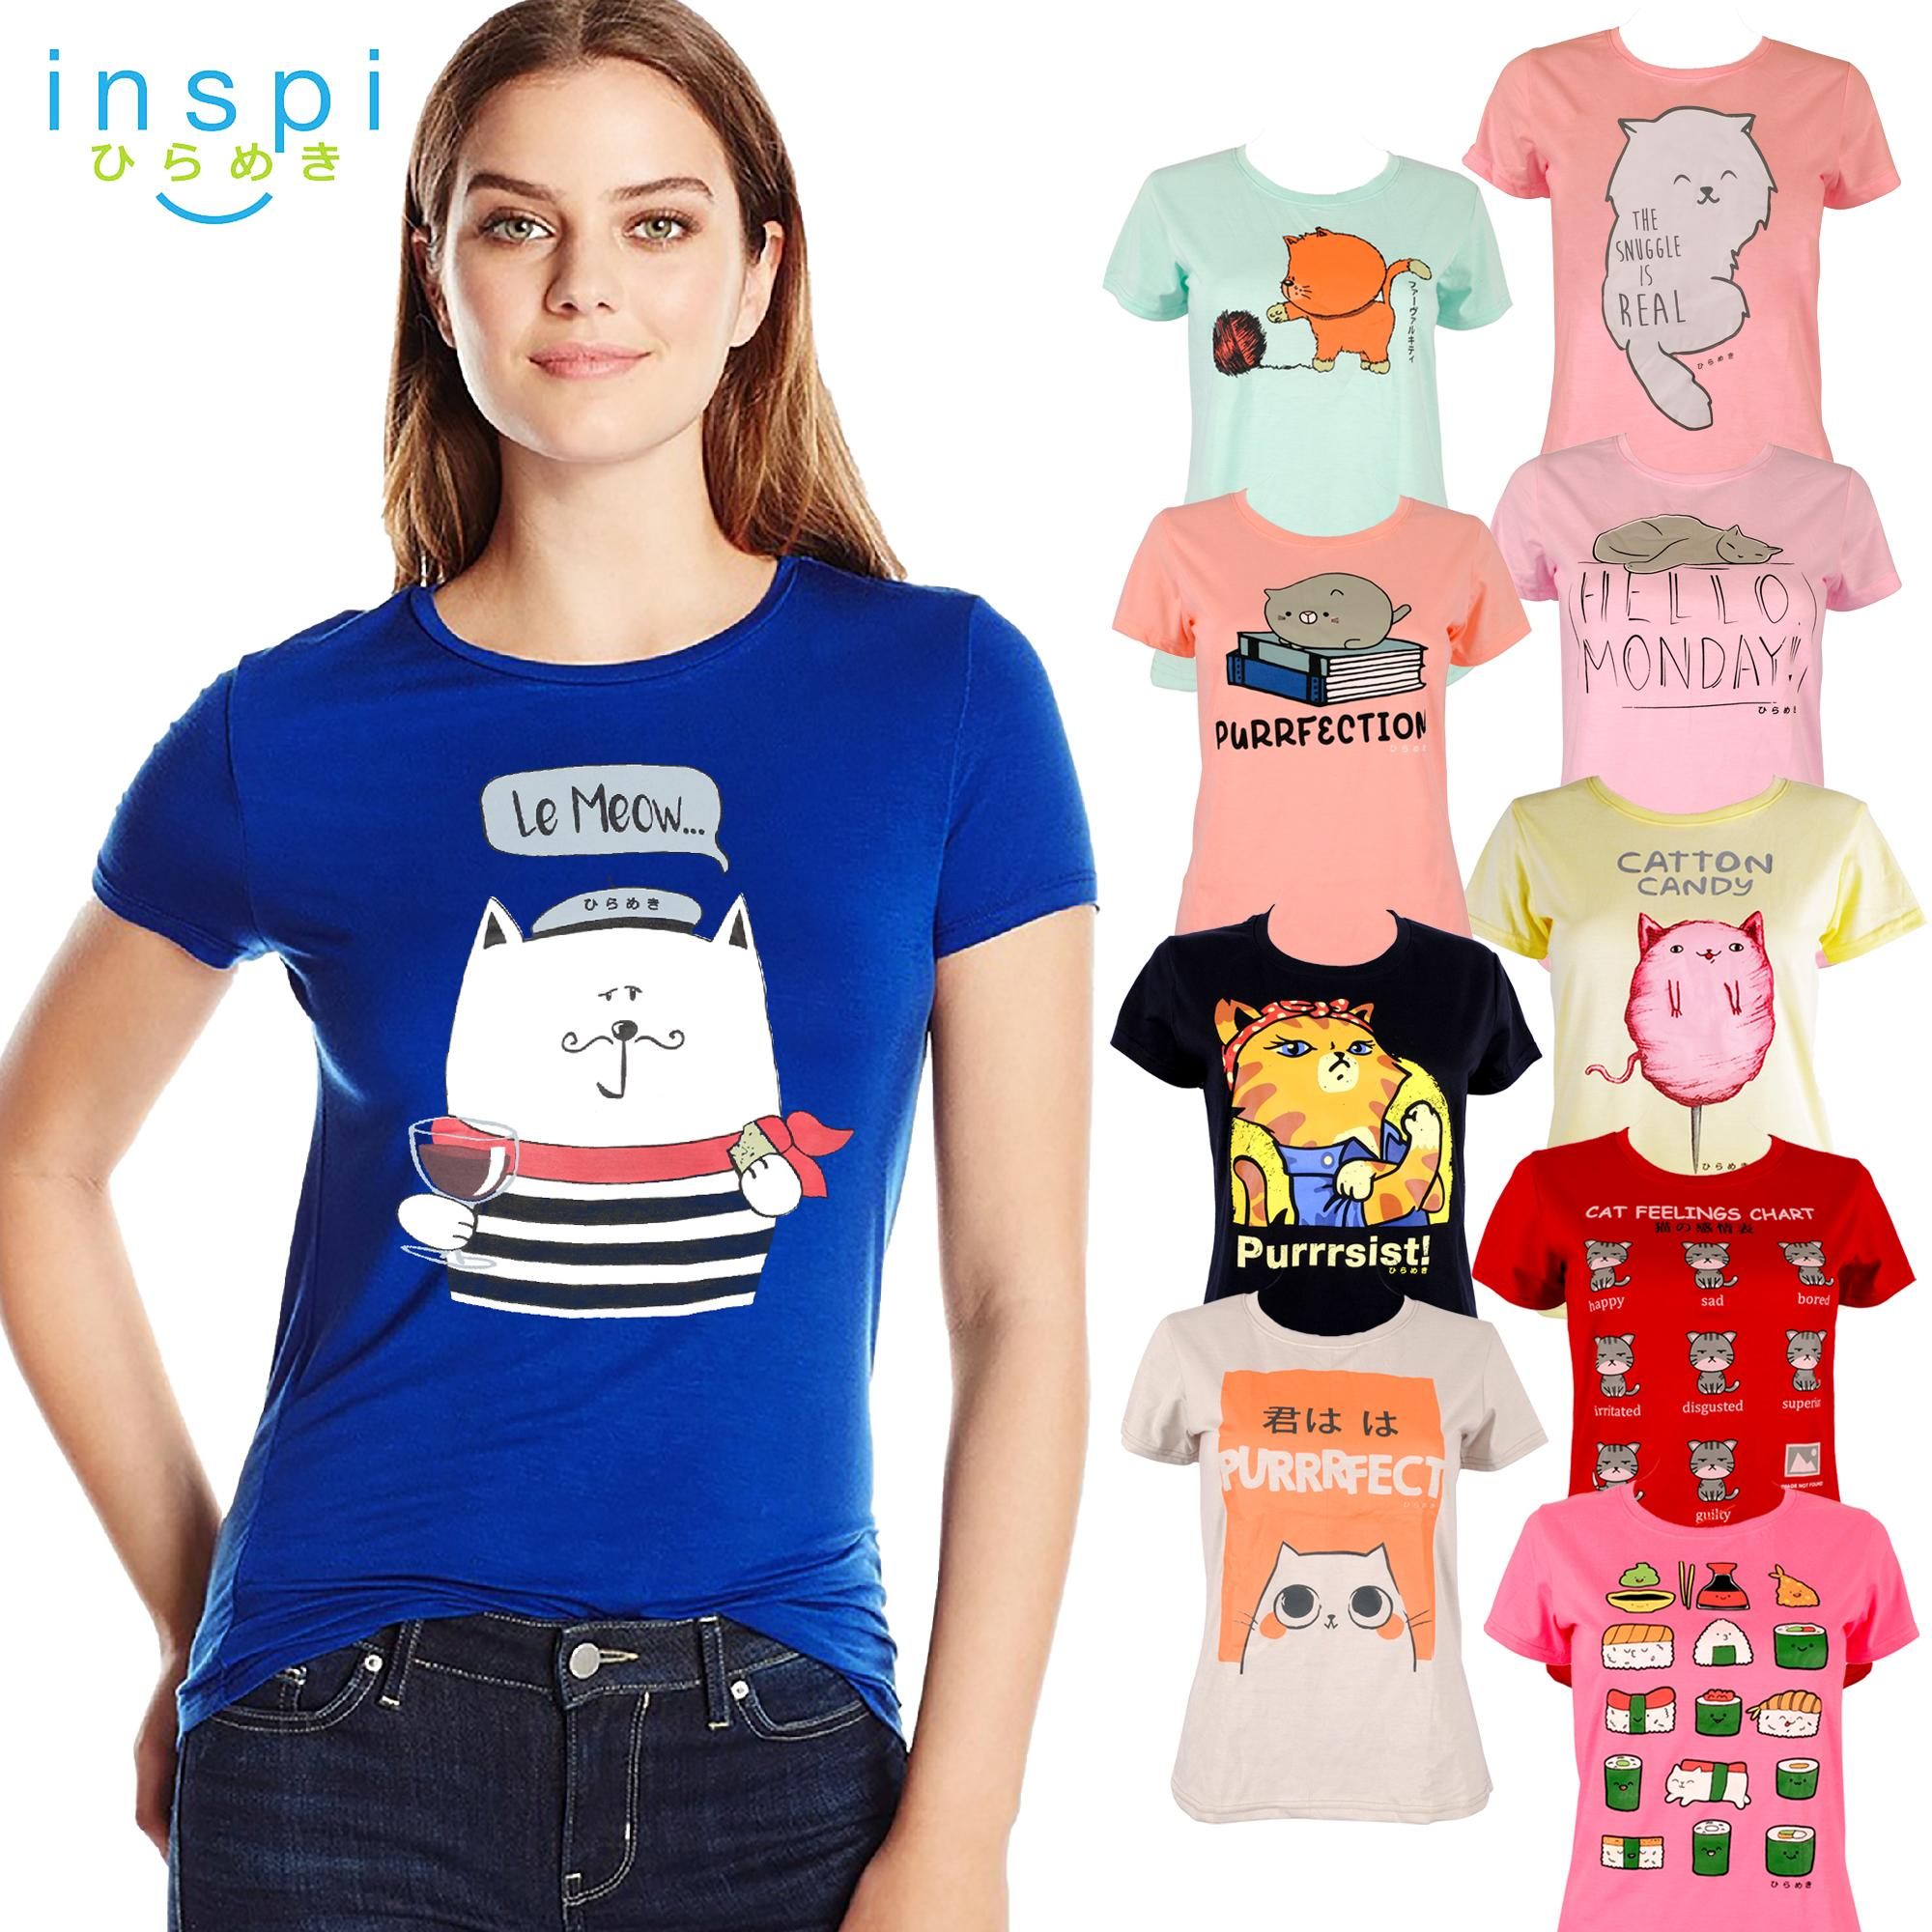 4034b997 INSPI Tees Ladies Neko Collection tshirt printed graphic tee Ladies t shirt  shirts women tshirts for